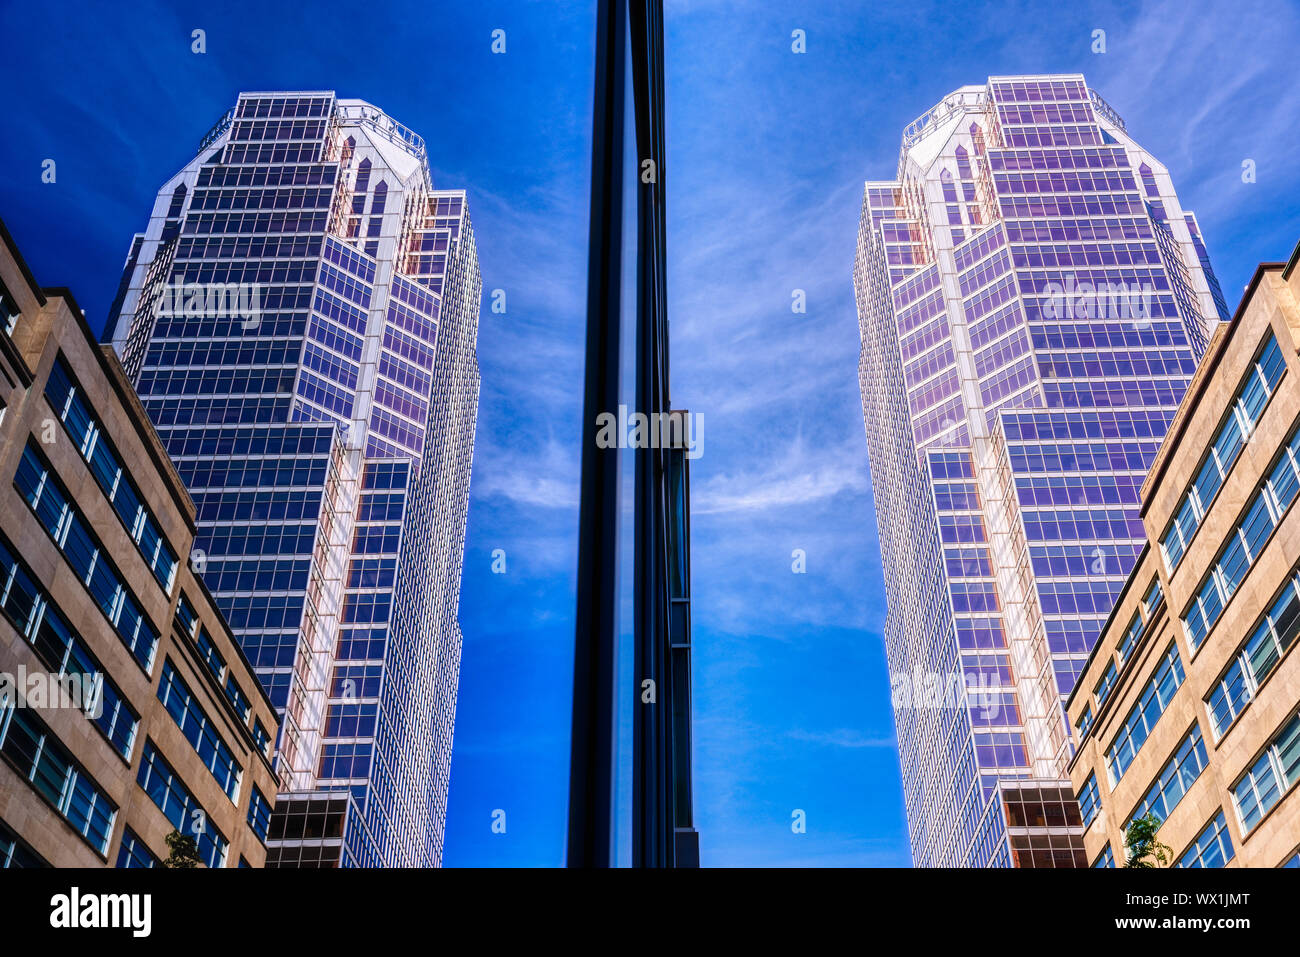 The KPMG Building reflected in the glass walls of the BNP Paribas Building, boulevard Maisonneuve, Montreal Stock Photo